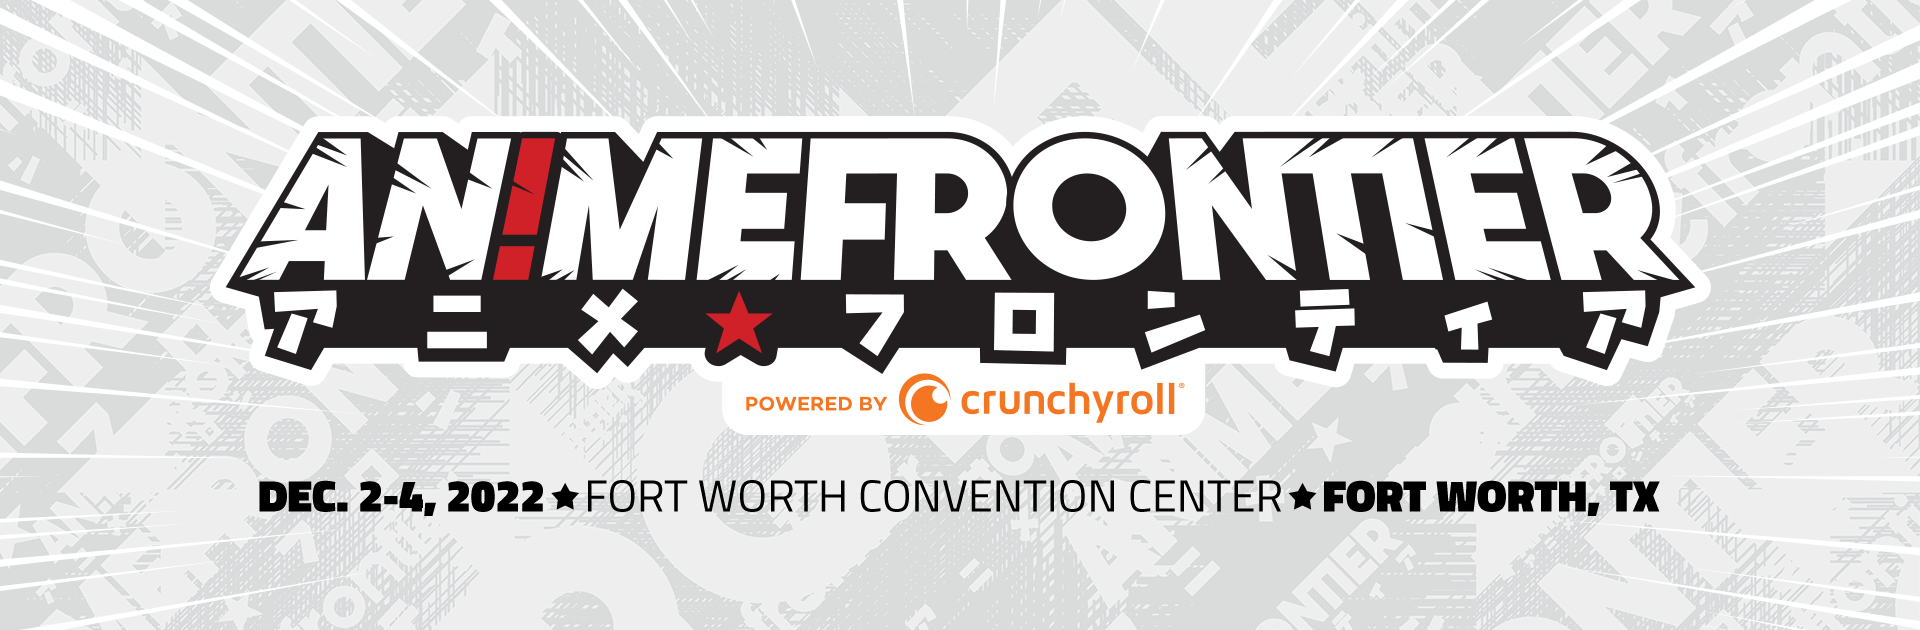 Tickets for Anime Frontier 2020 Powered By Crunchyroll in Fort Worth from ShowClix